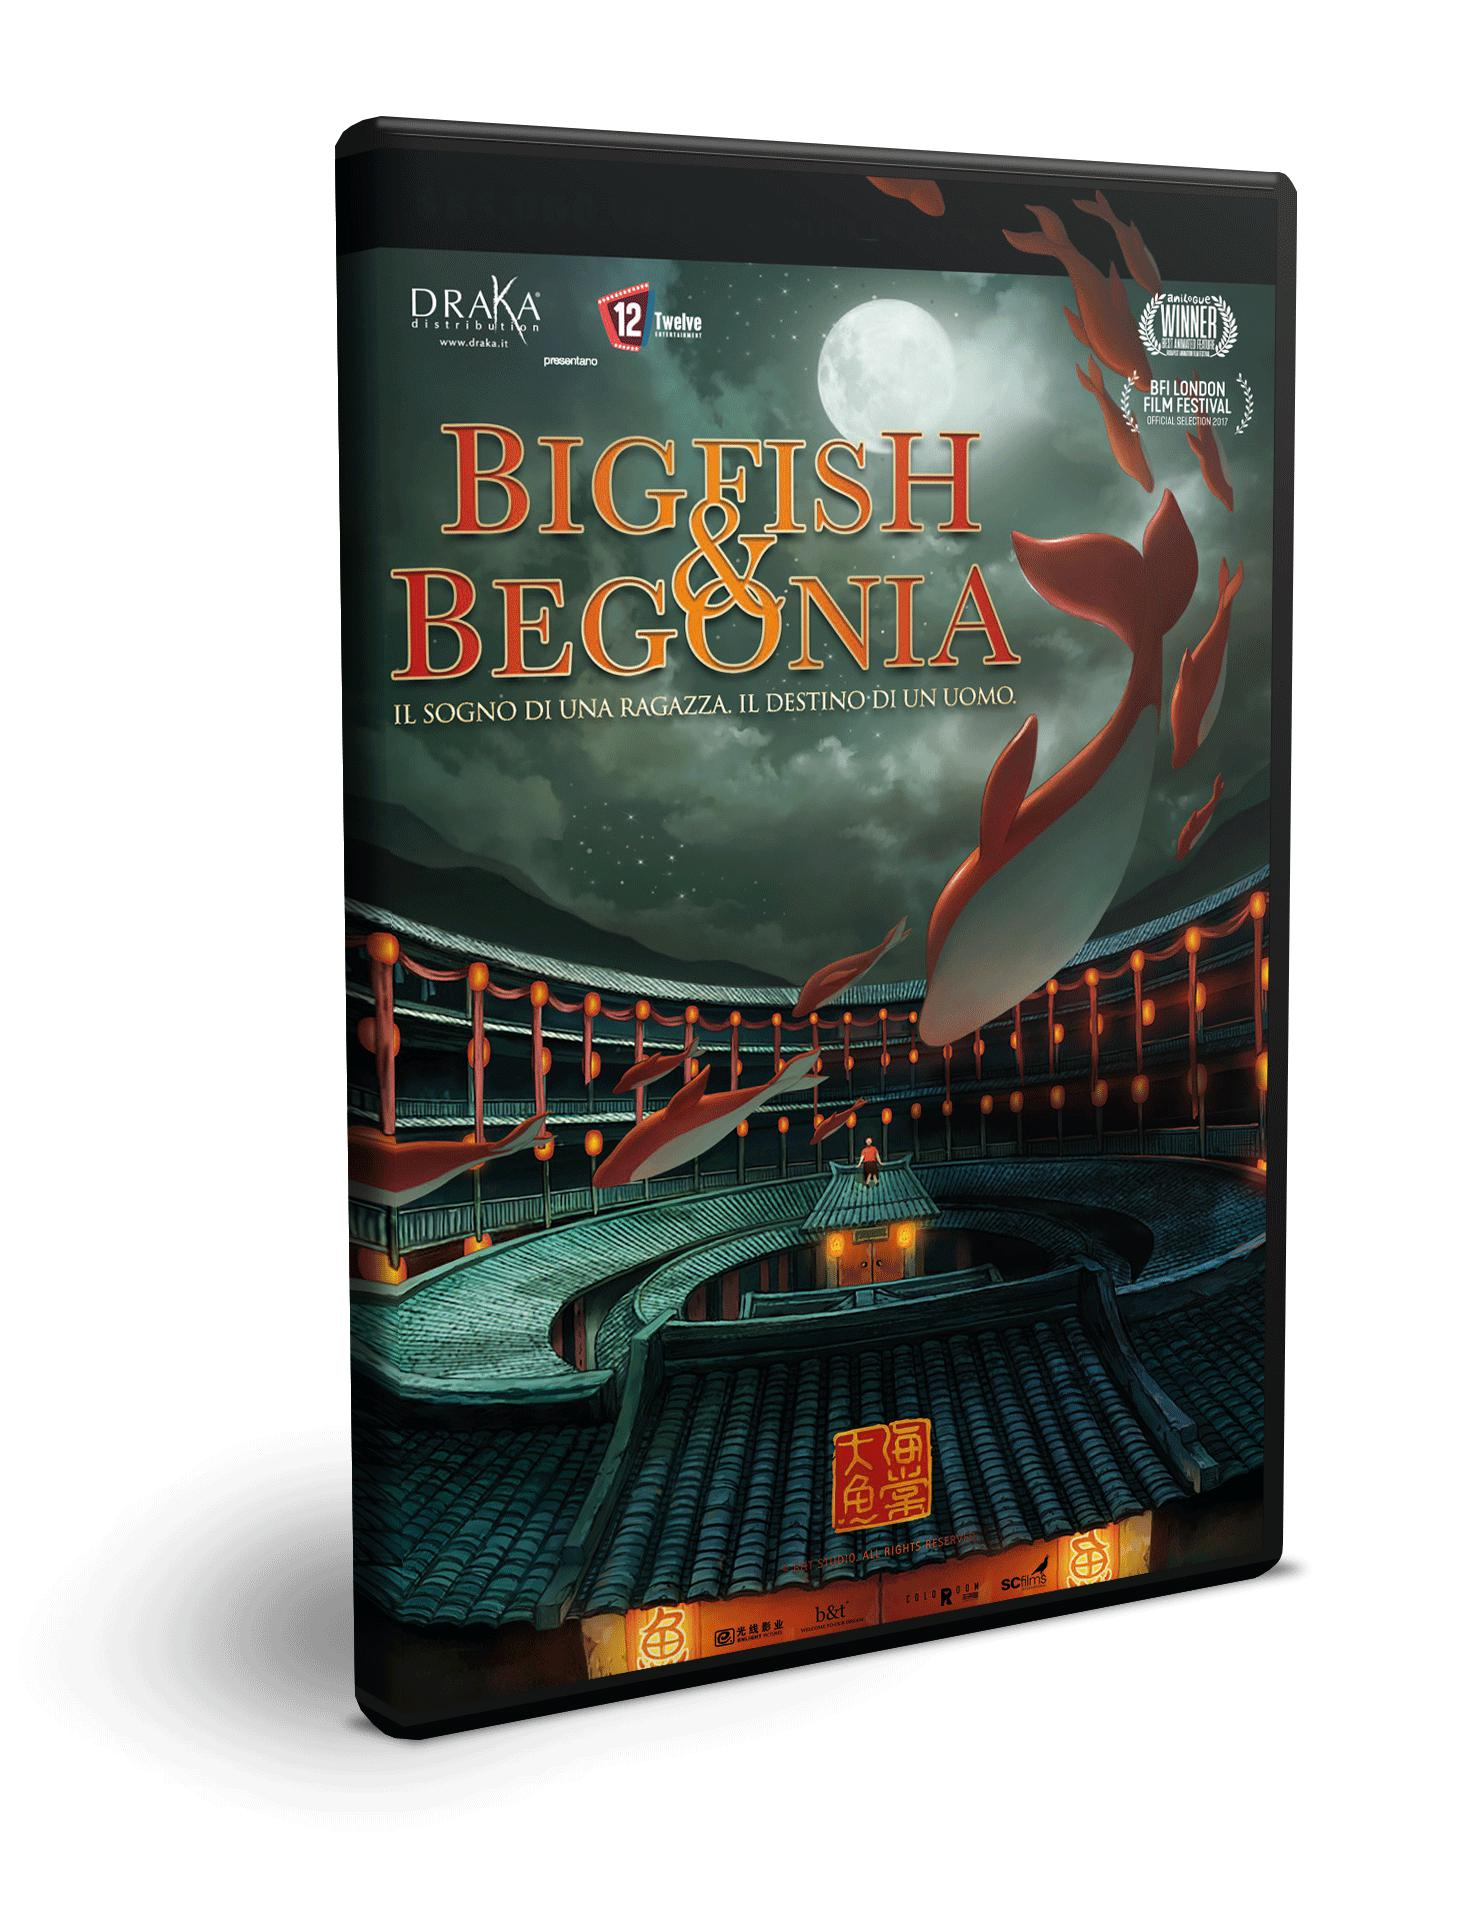 BIG FISH & BEGONIA - BLU RAY